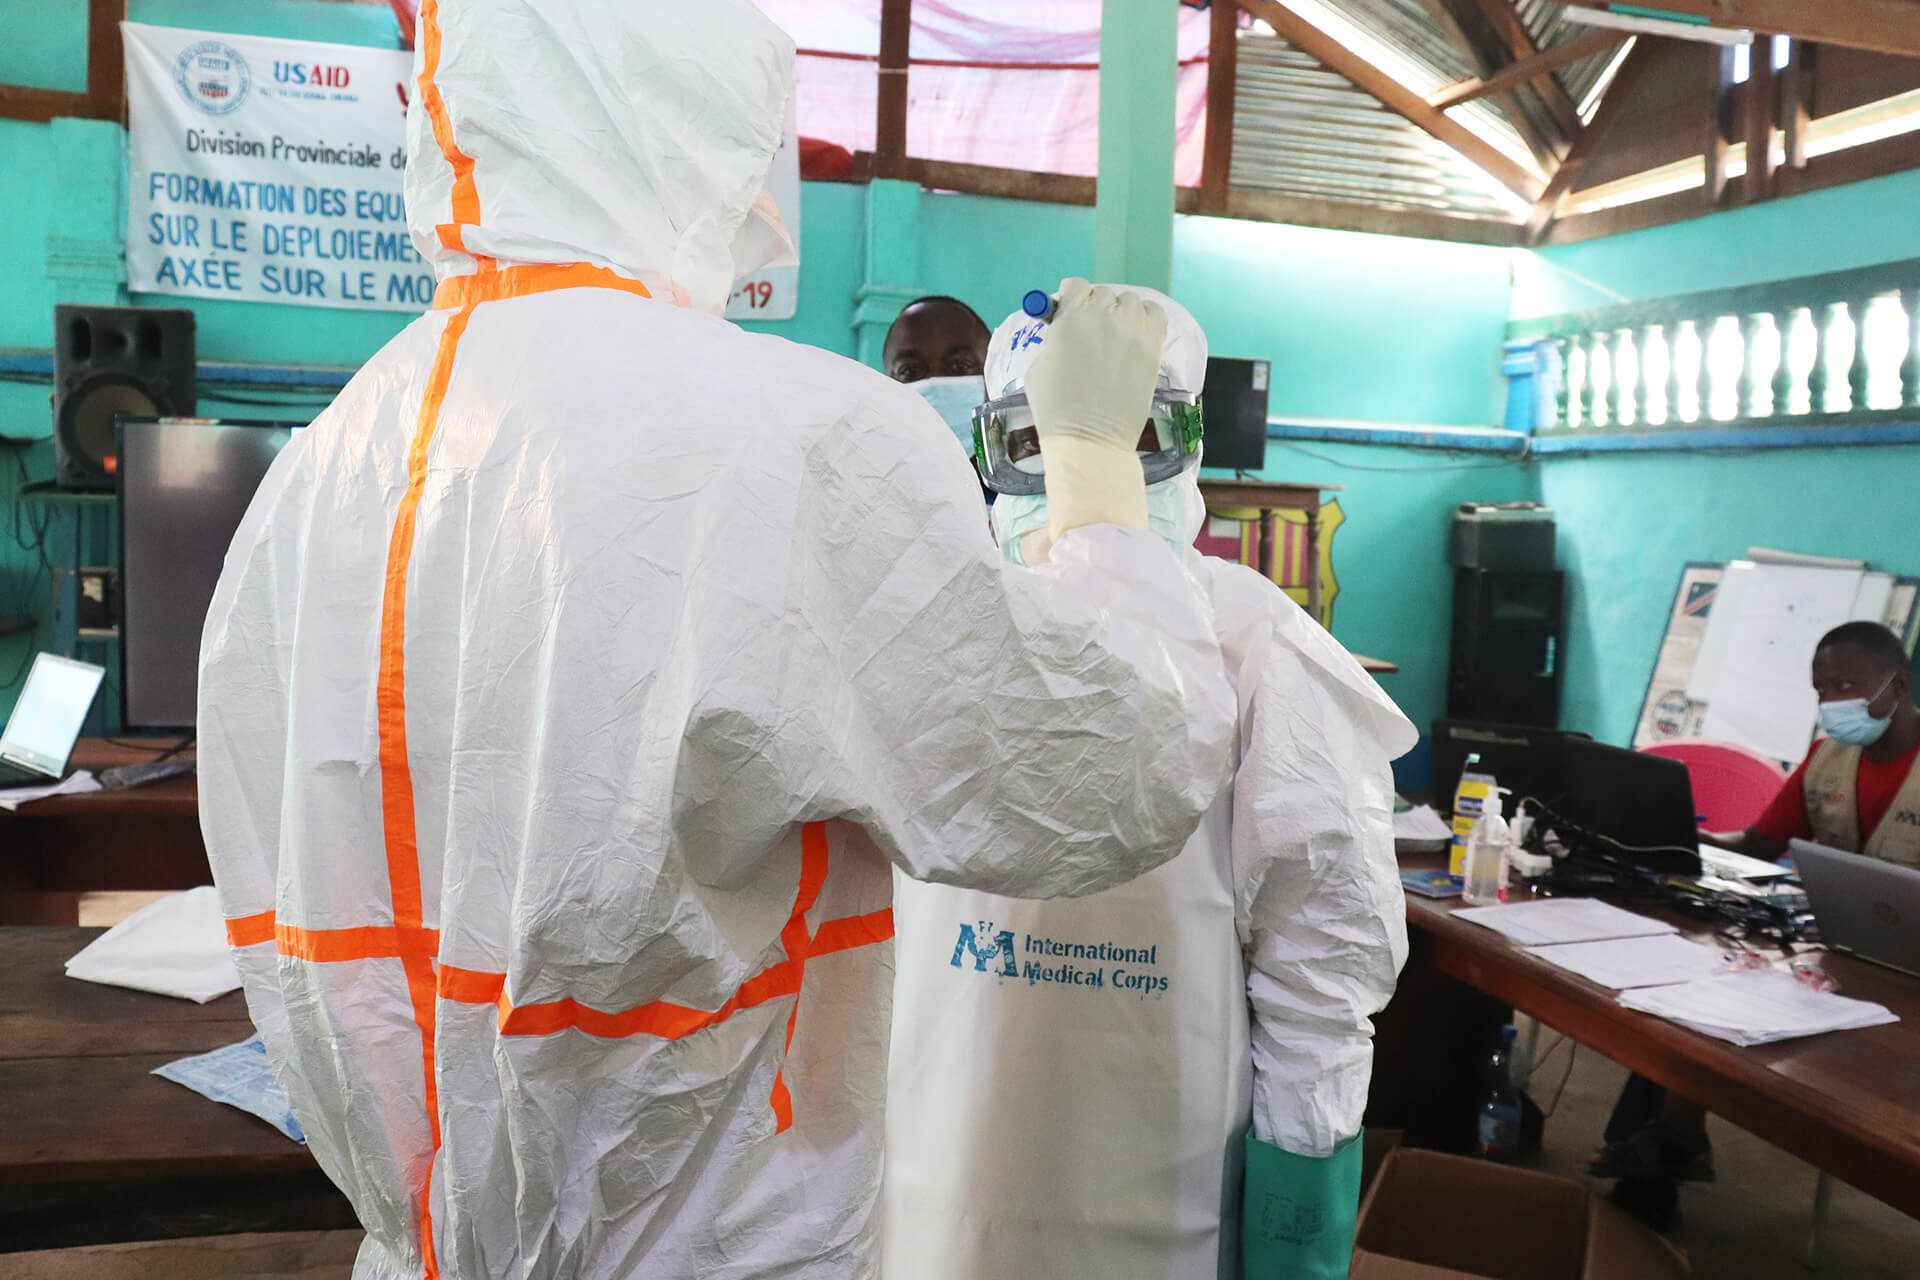 Our Rapid Response Team is training local health staff, to enhance their ability to respond if another outbreak occurs.